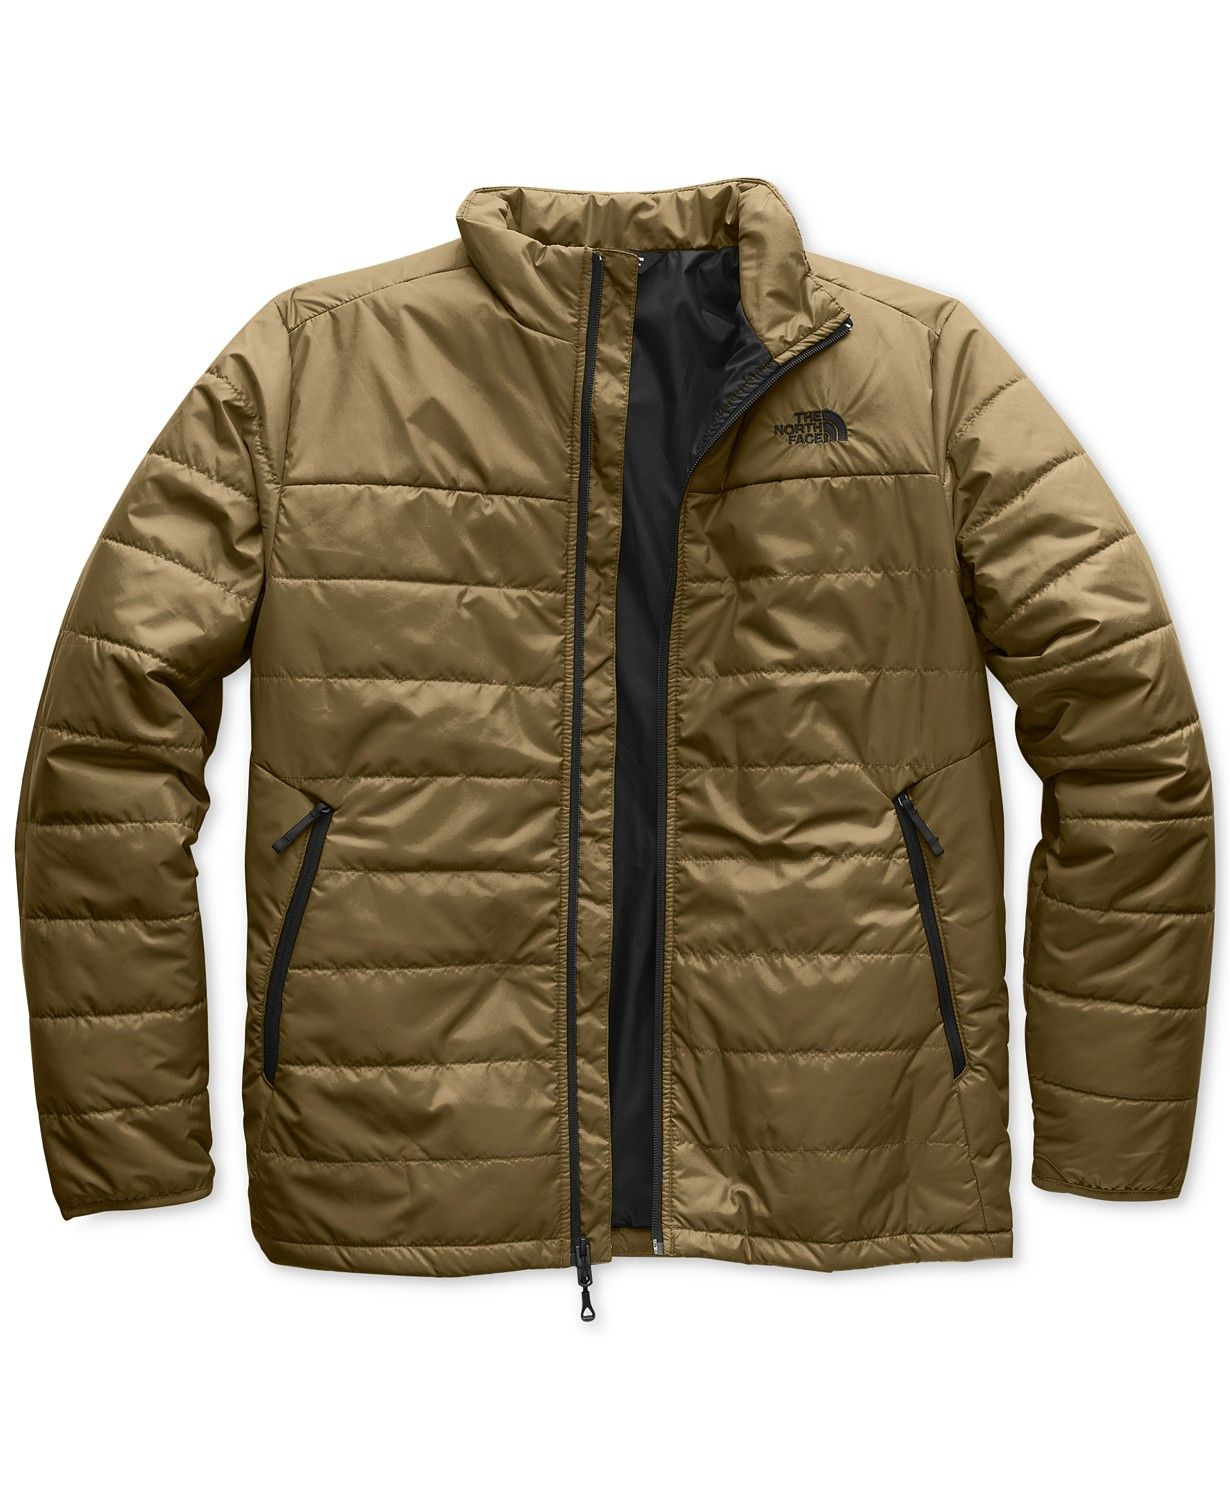 The North Face Men S Insulated Bombay Jacket Coats Jackets Men Macy S North Face Mens Mens Jackets Jackets [ 1500 x 1230 Pixel ]